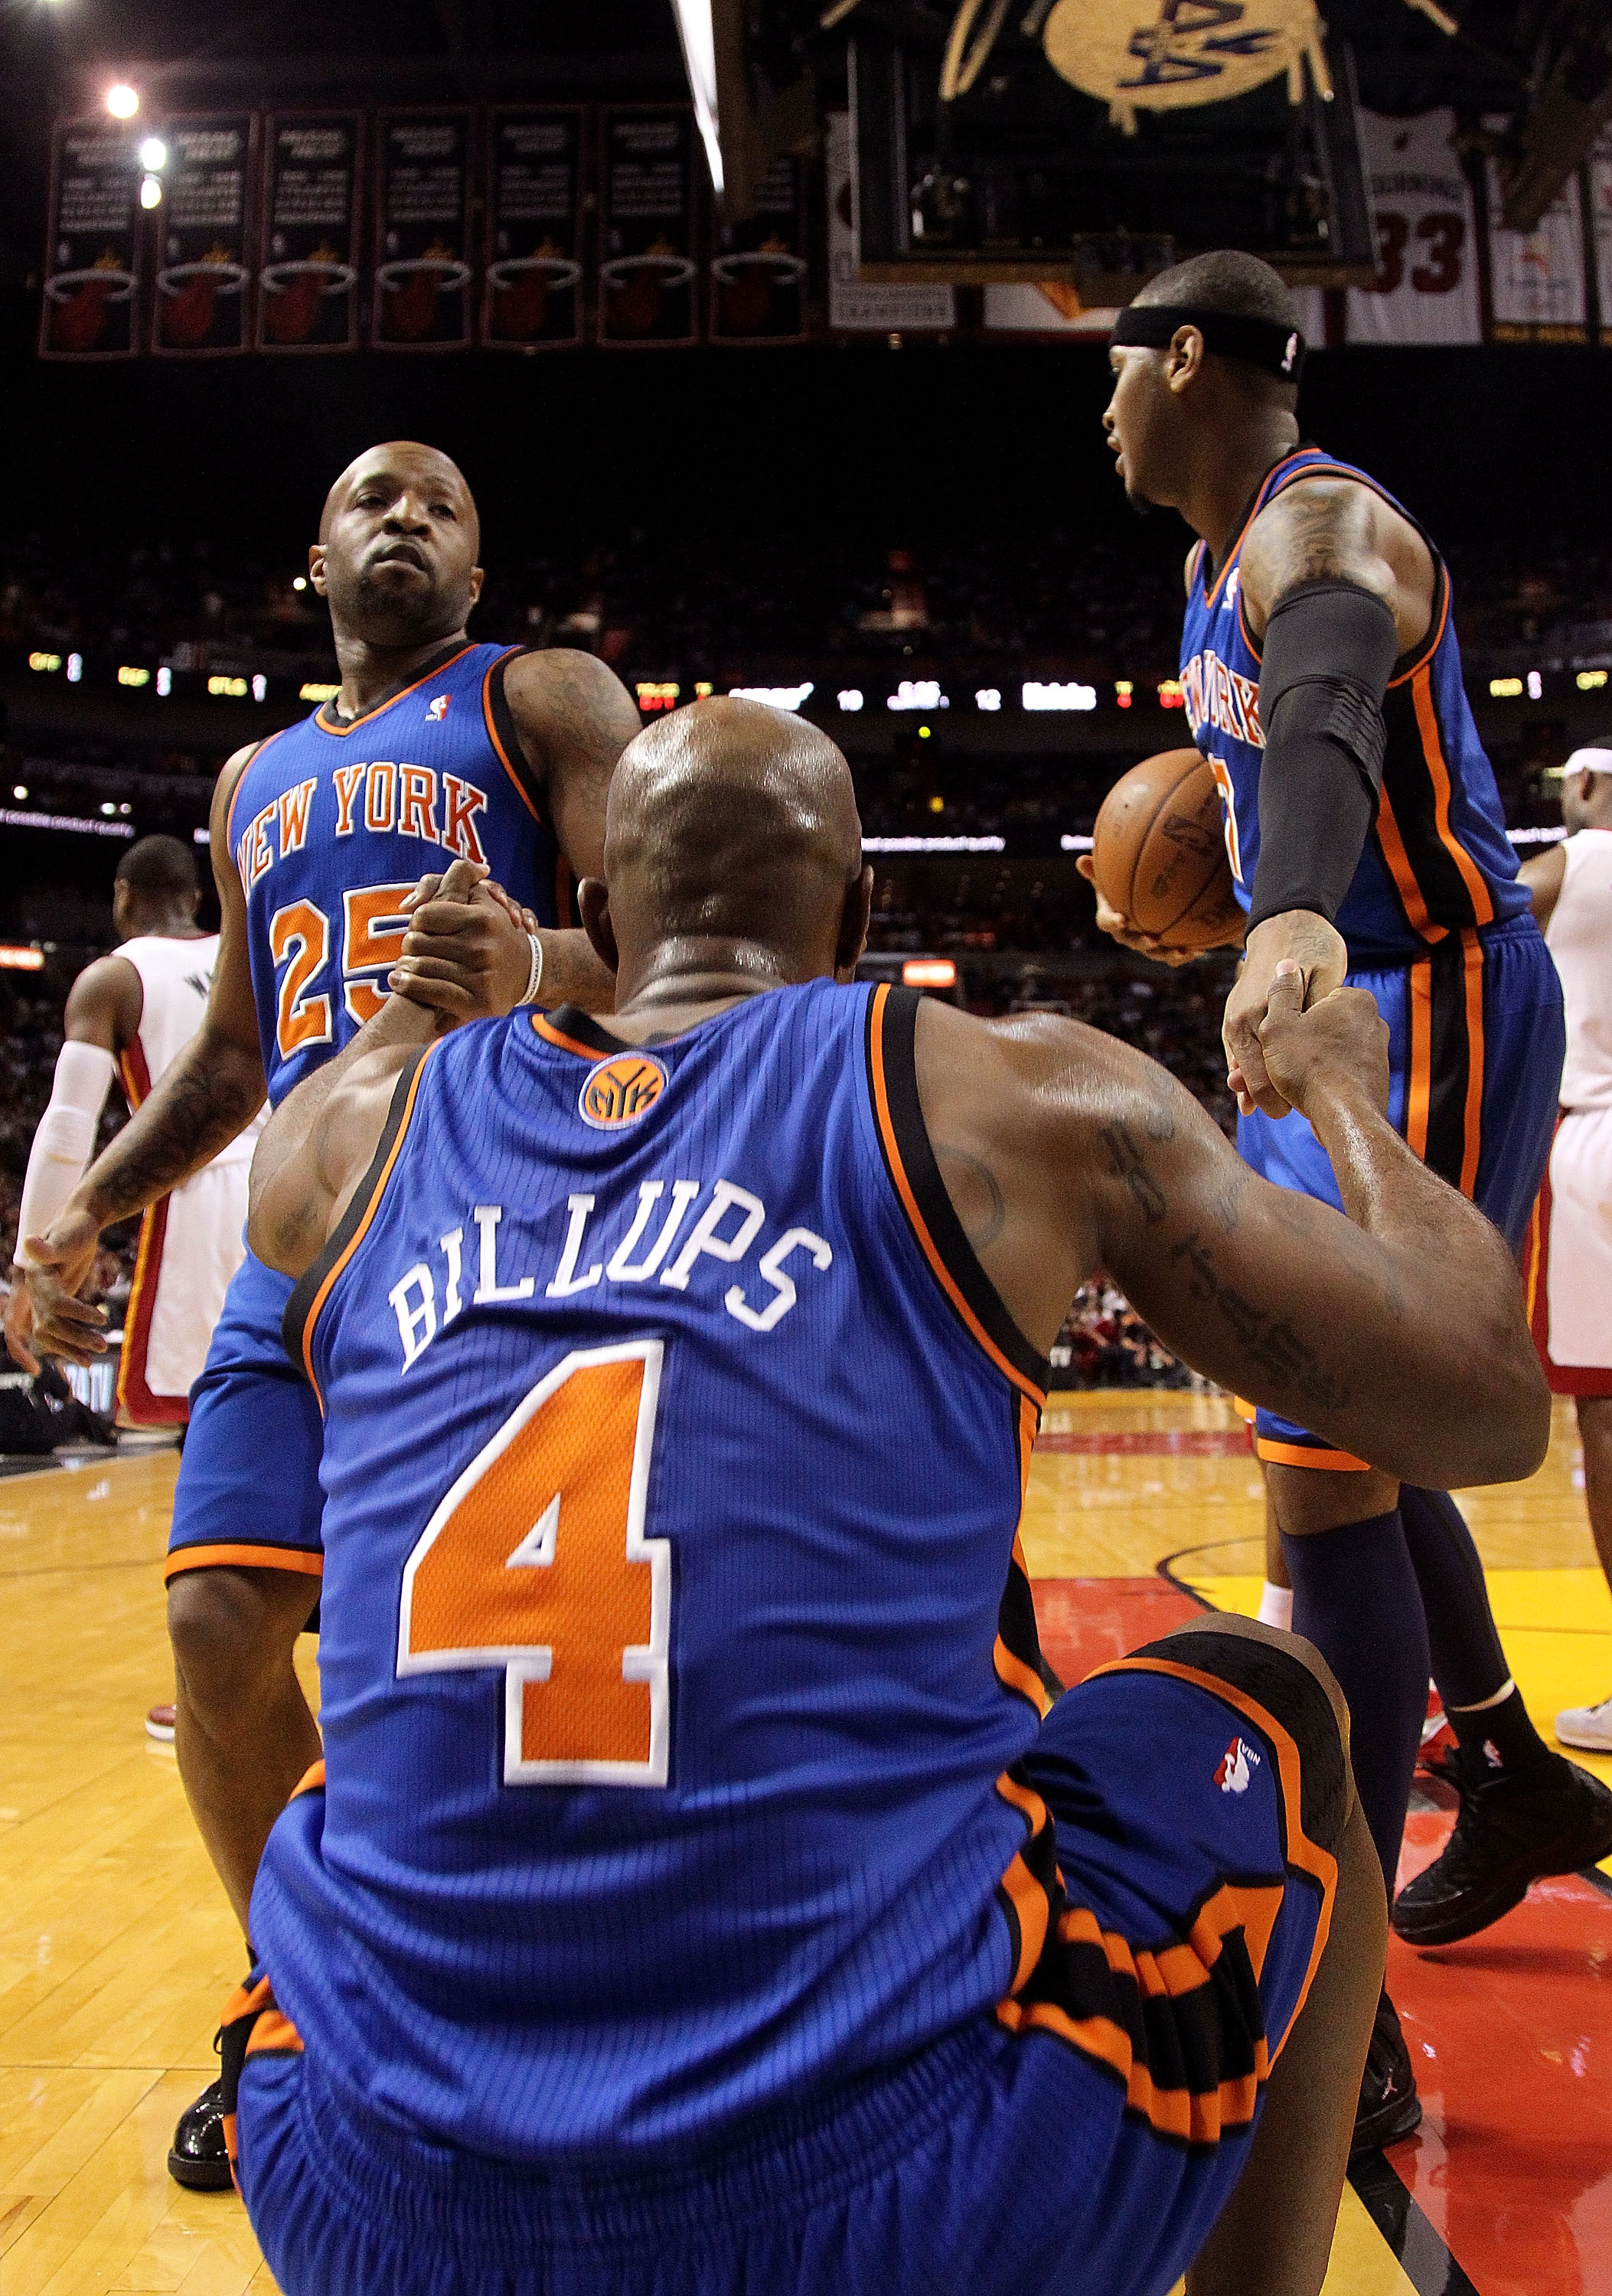 MIAMI, FL - FEBRUARY 27:  Chauncey Billups #4 of the New York Knicks is helped up by Carmelo Anthony #7 and Anthony Carter #25 during a game gainst the Miami Heat at American Airlines Arena on February 27, 2011 in Miami, Florida. NOTE TO USER: User expres